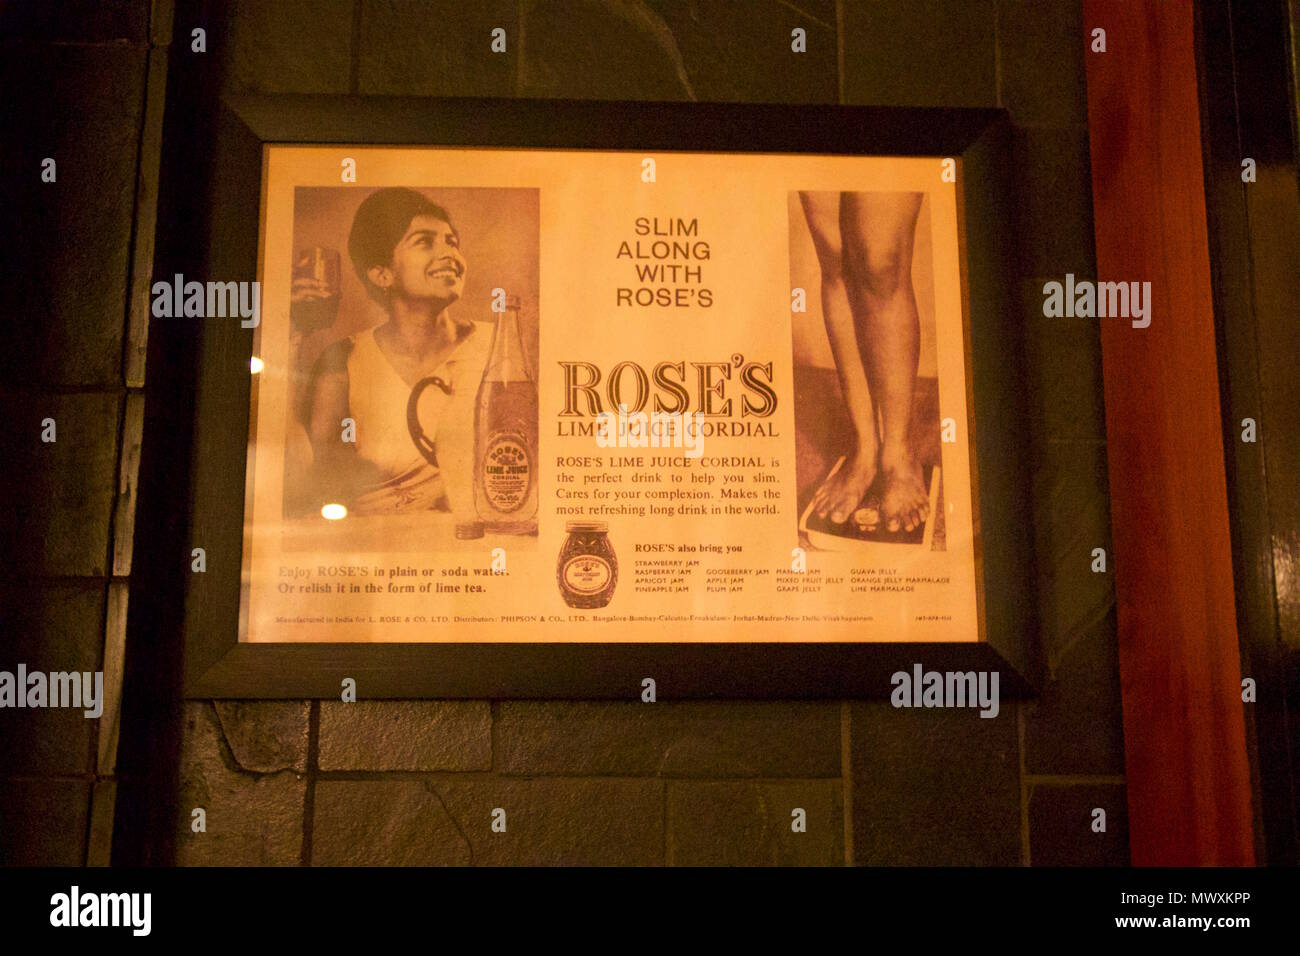 An old indian advert for Rose's Lime Juice Cordial in the bathrooms at Dishoom serving as decoration - Stock Image